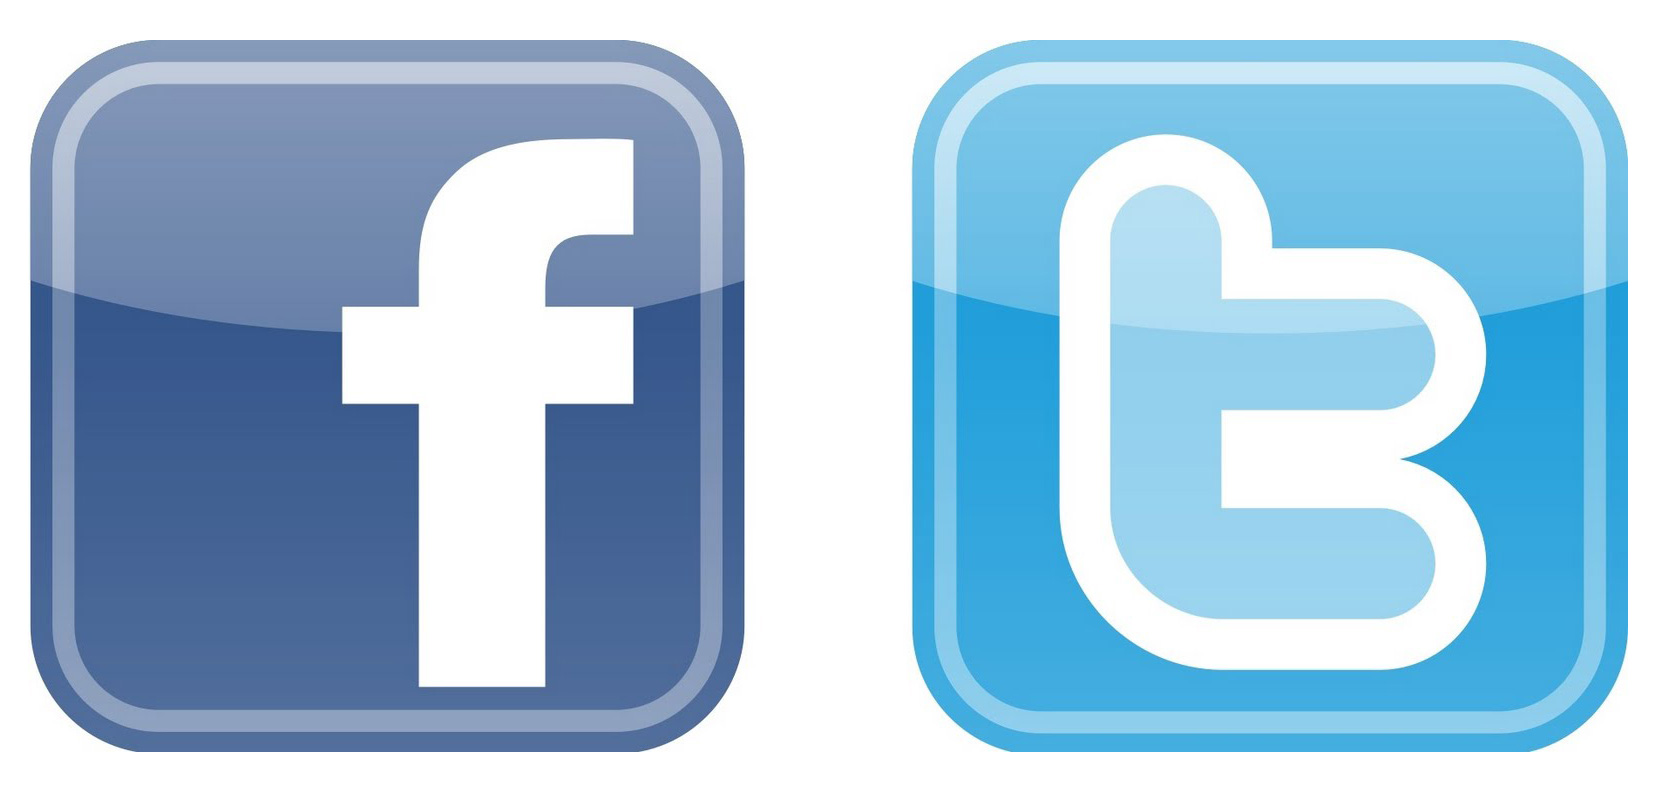 Facebook logo hd clipart svg freeuse stock Facebook Twitter Icon Png #309086 - Free Icons Library svg freeuse stock